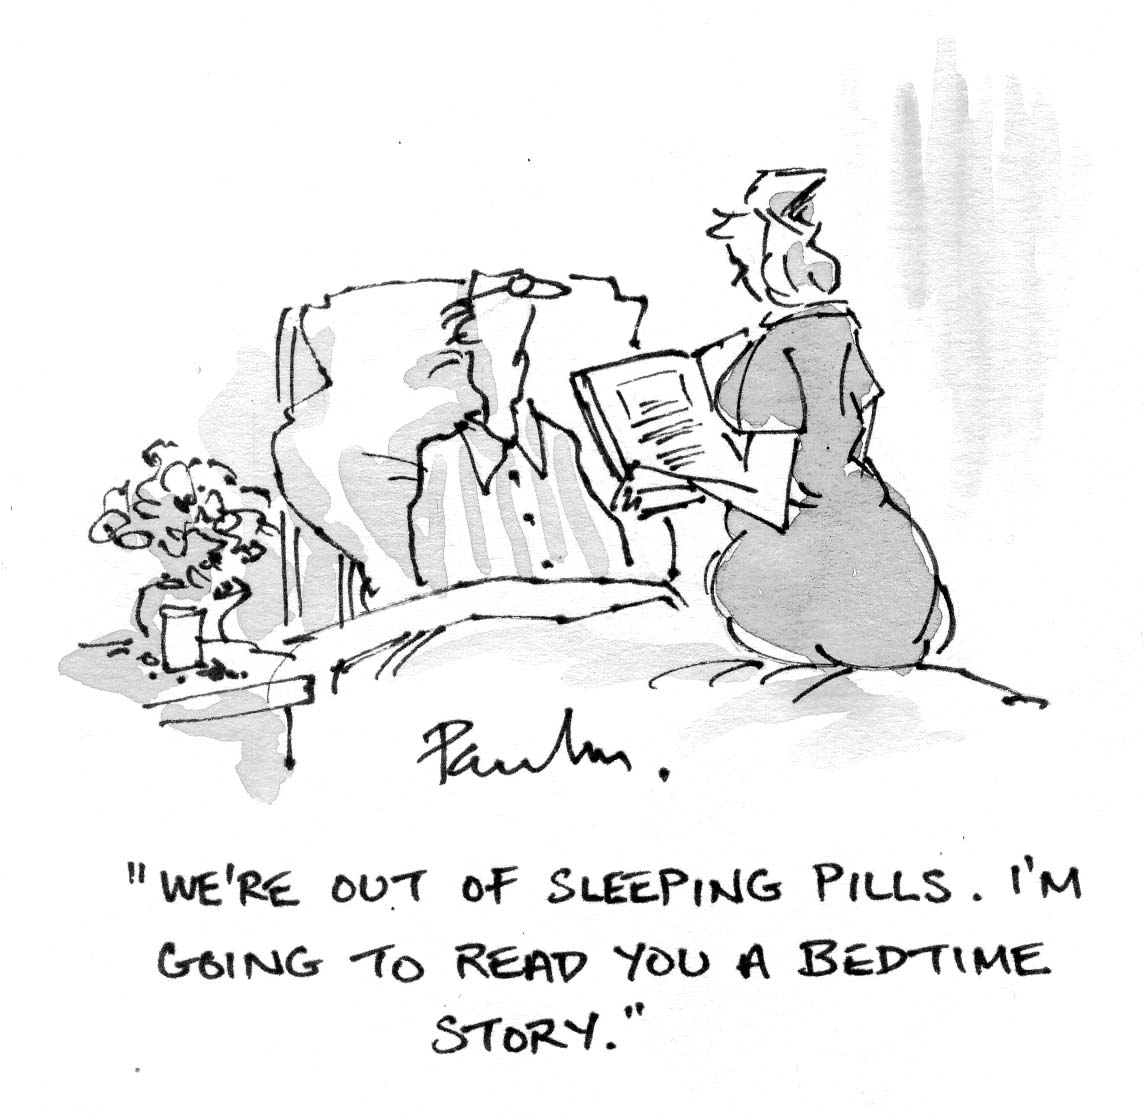 Nurse Cartoons Bedtime Story Scrubs The Leading Lifestyle Nursing Magazine Featuring Inspirational And Informational Nursing Articles